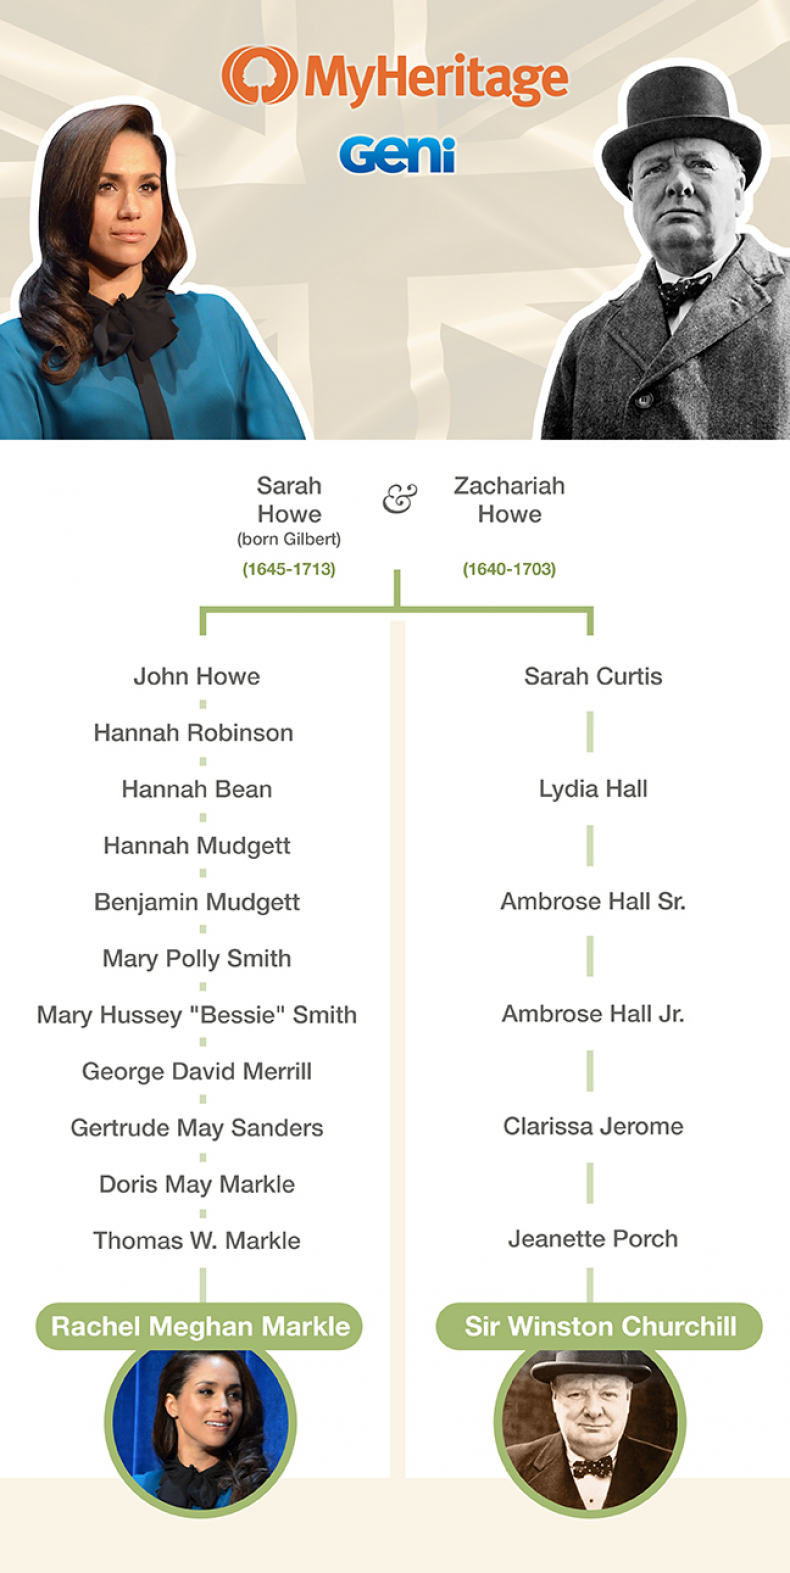 Meghan Markle and Churchill family tree